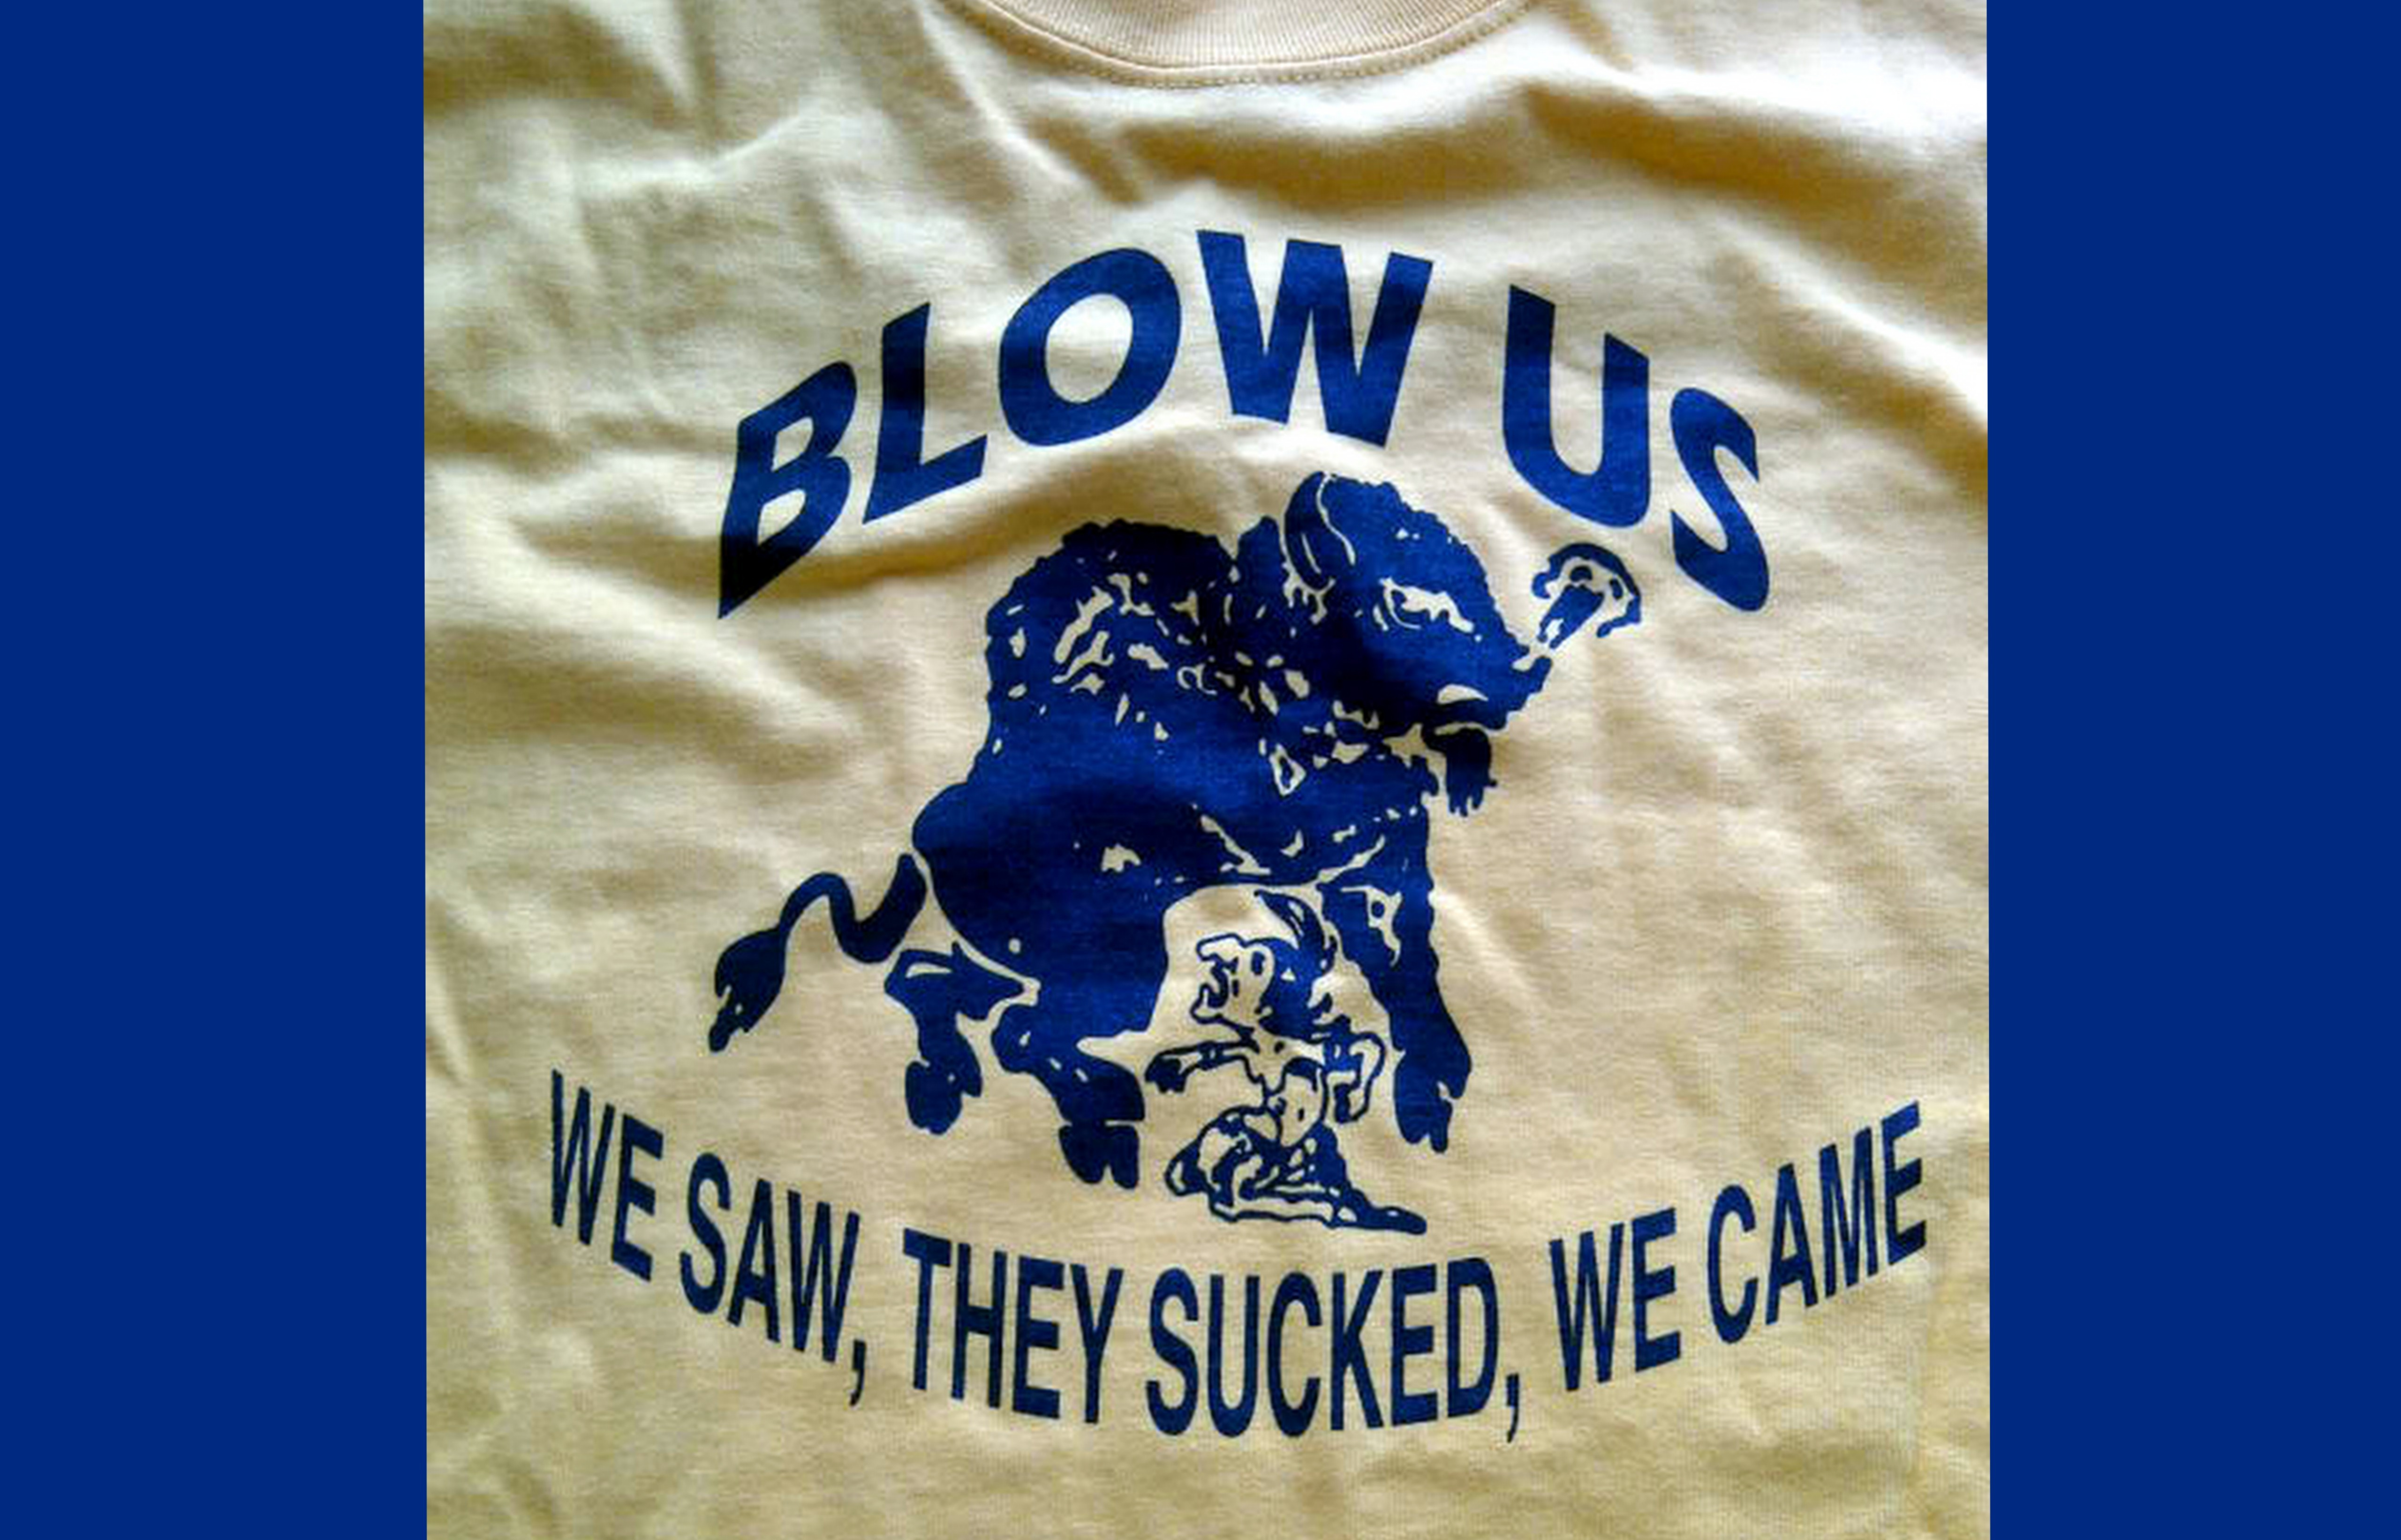 A 'Blow Us' T-Shirt from the fan site Bisonville.com - Screen Capture.